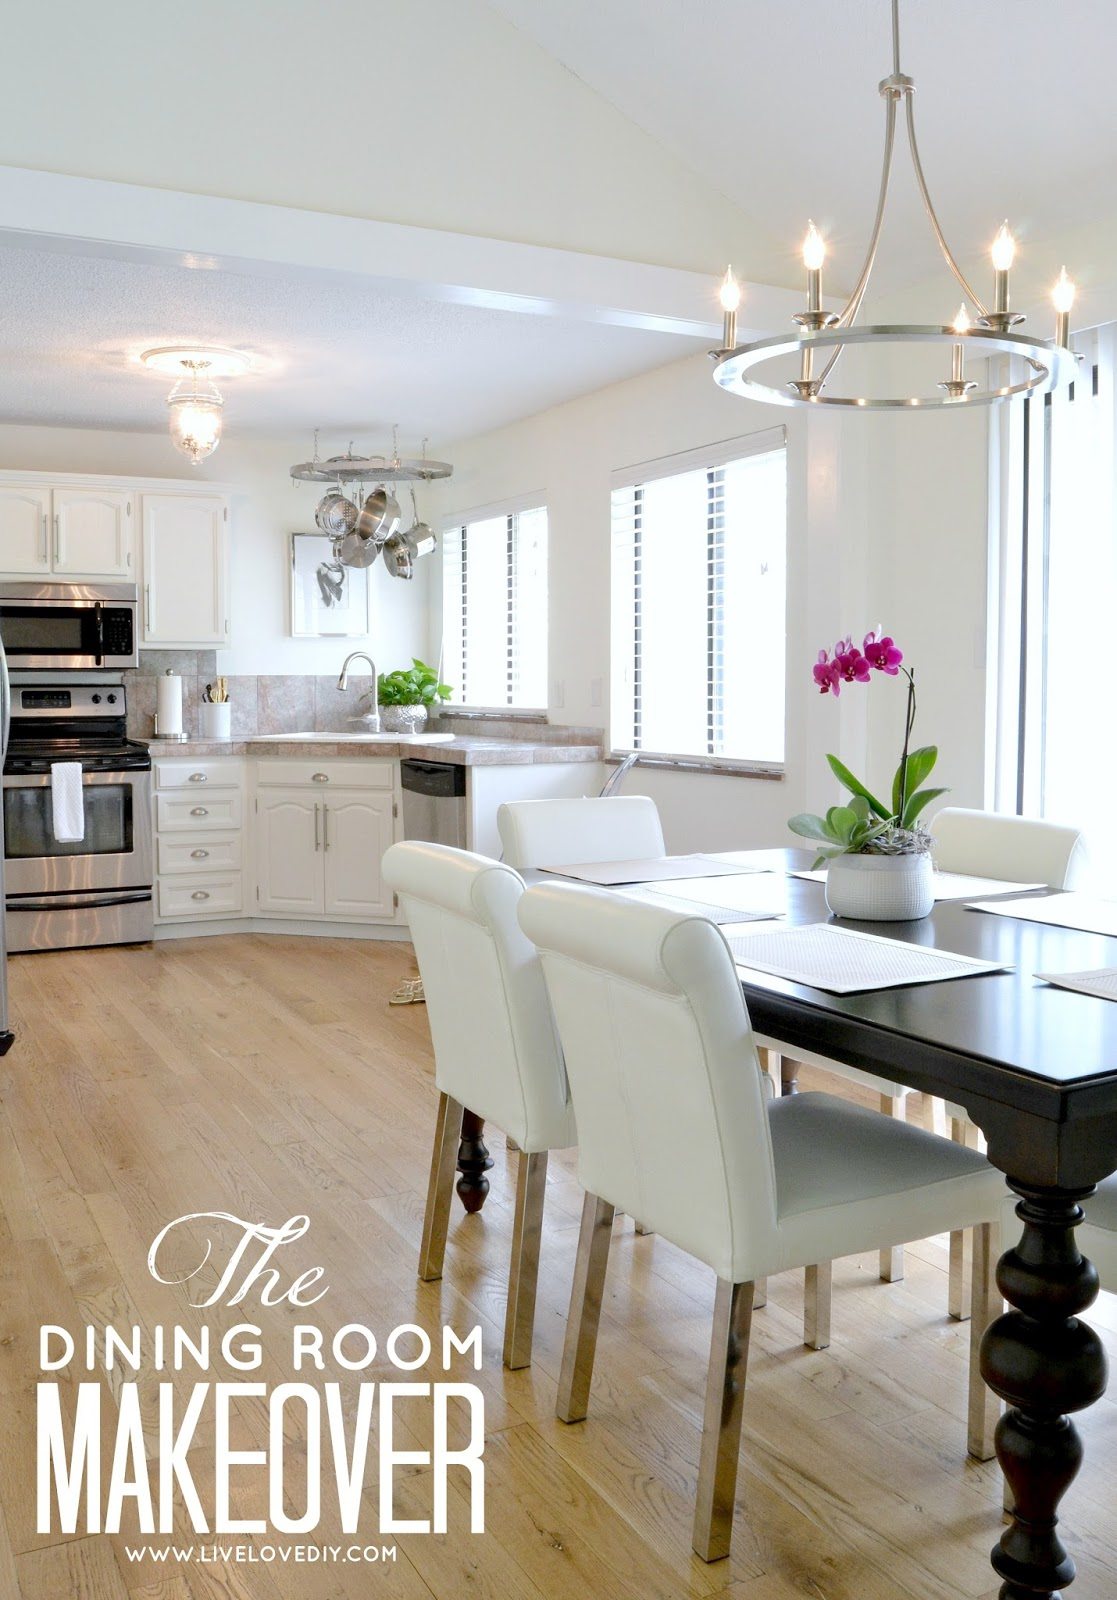 DIY Budget Dining Room Makeover Ideas. Love This Post! So Many Practical  Ideas On